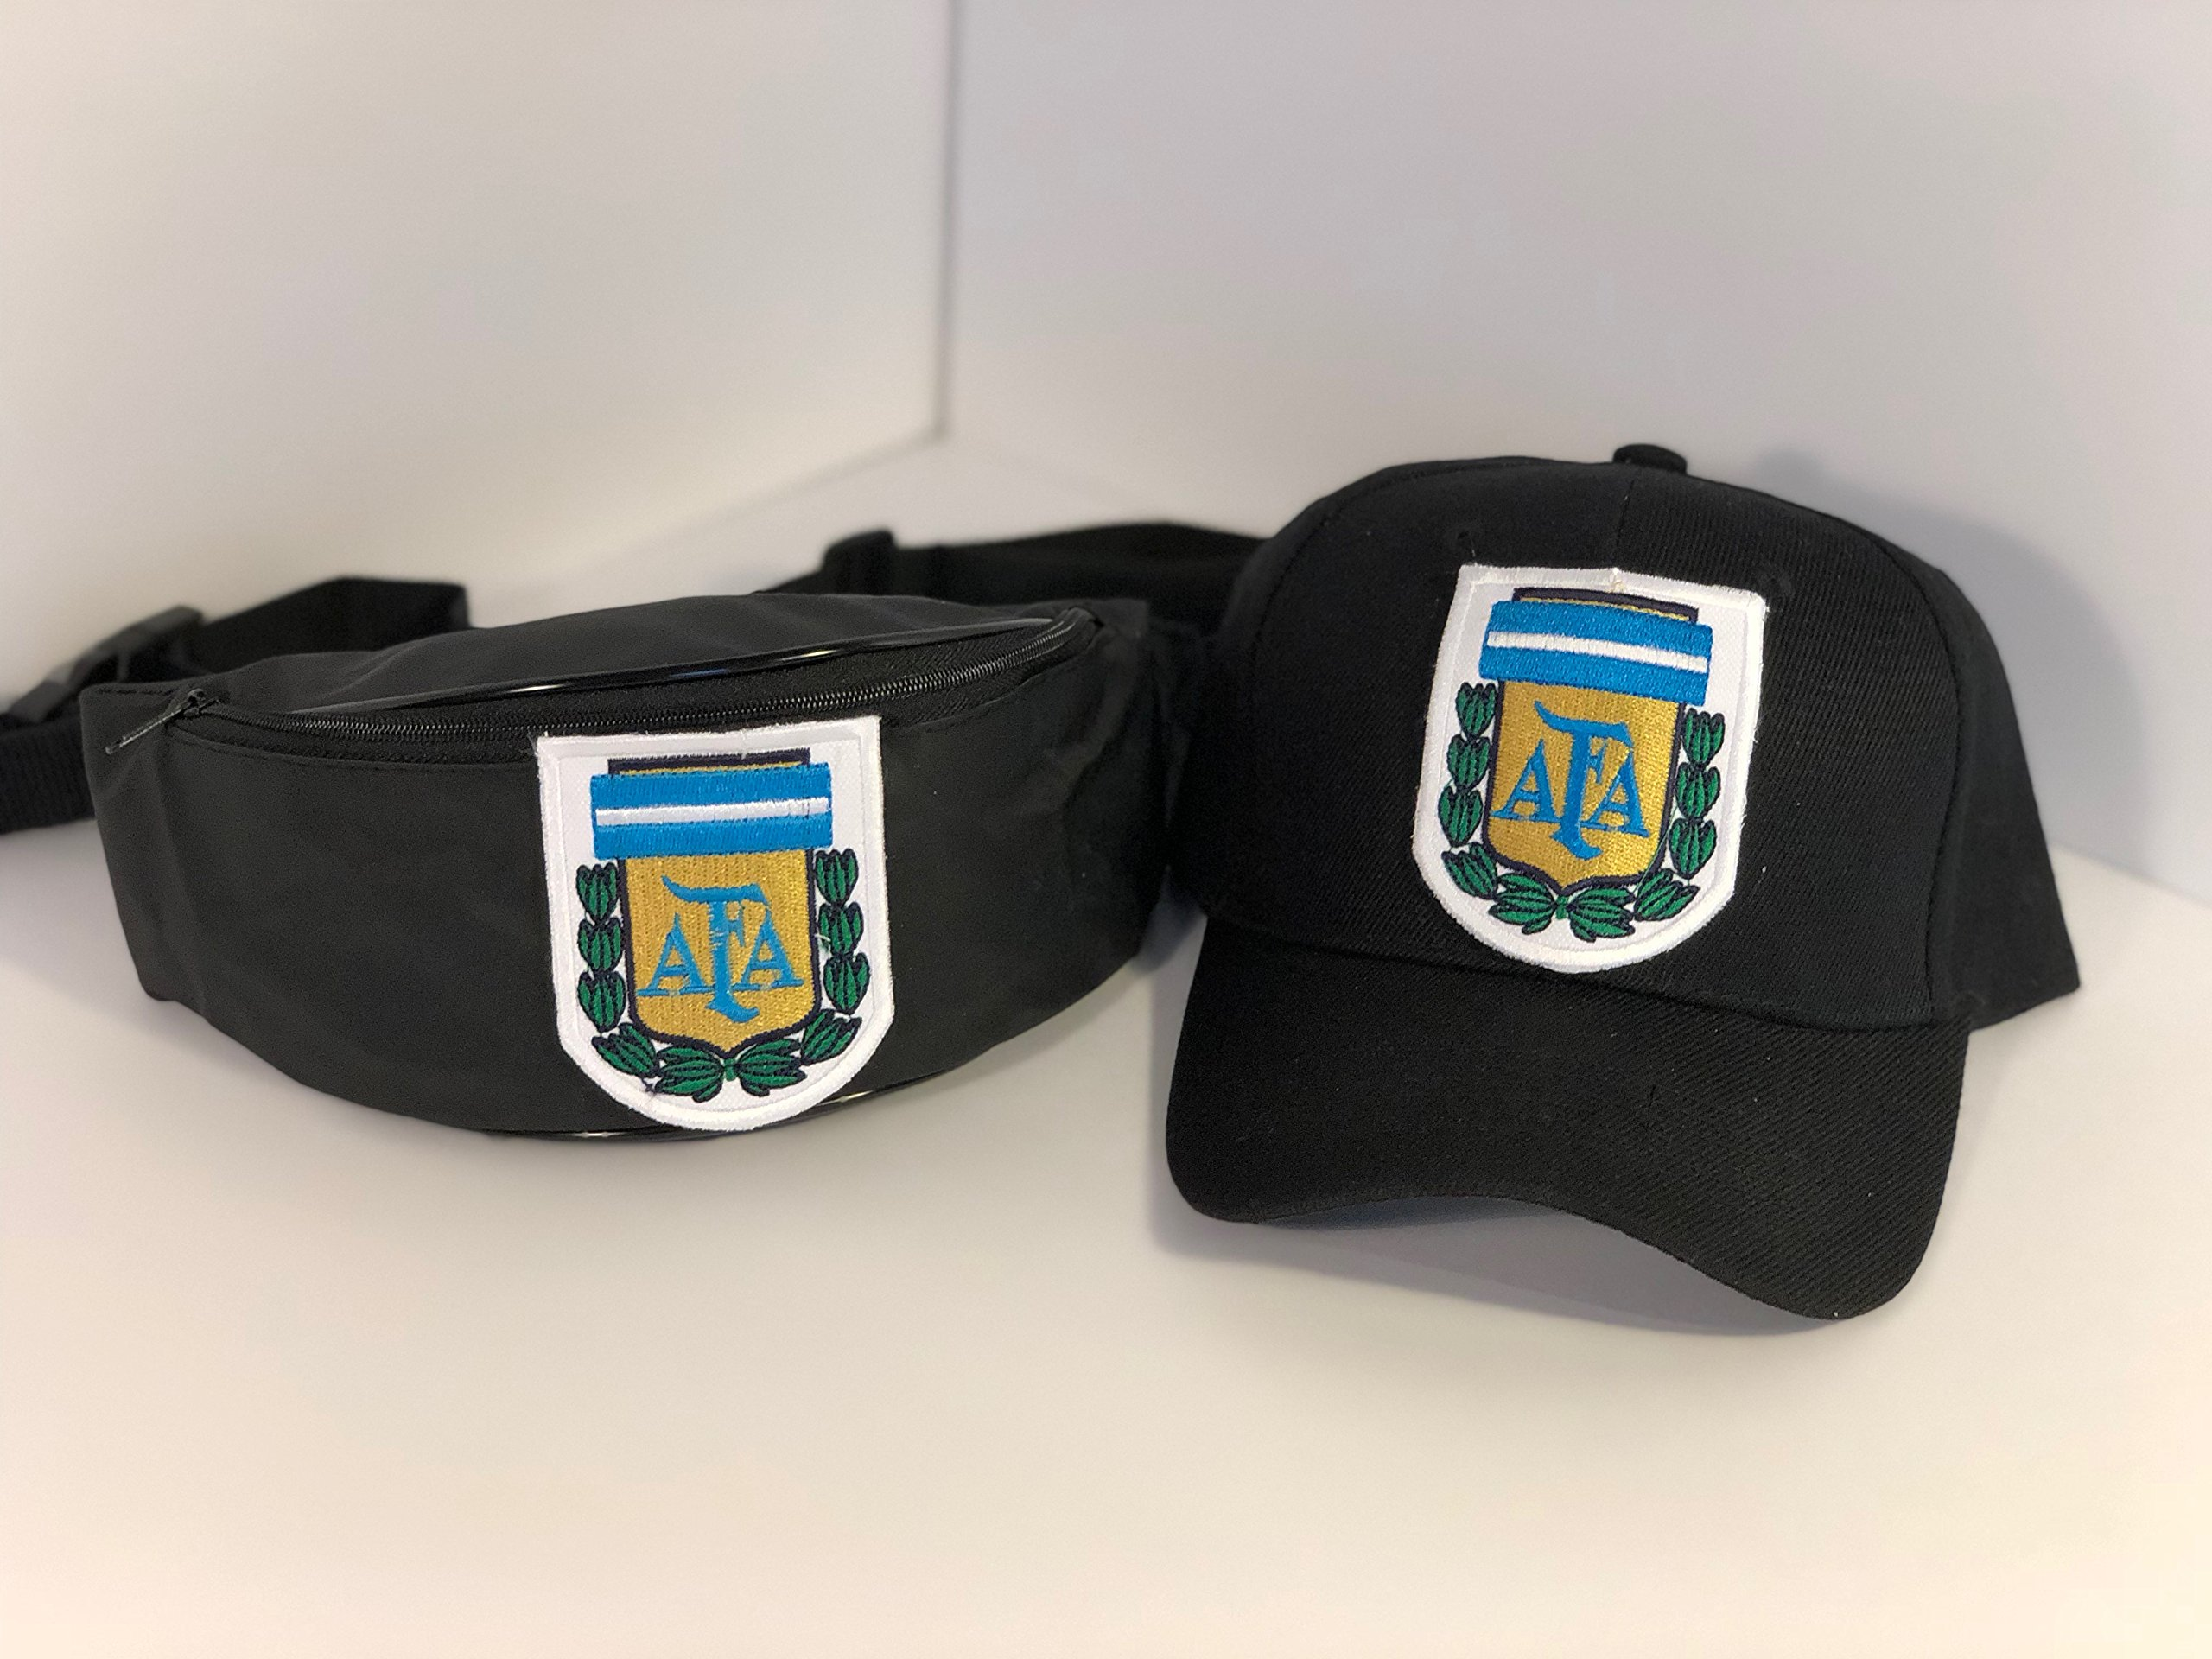 GETDEALS4U Russia World Cup 2018 Argentina Hat and Fanny Pack Bundle